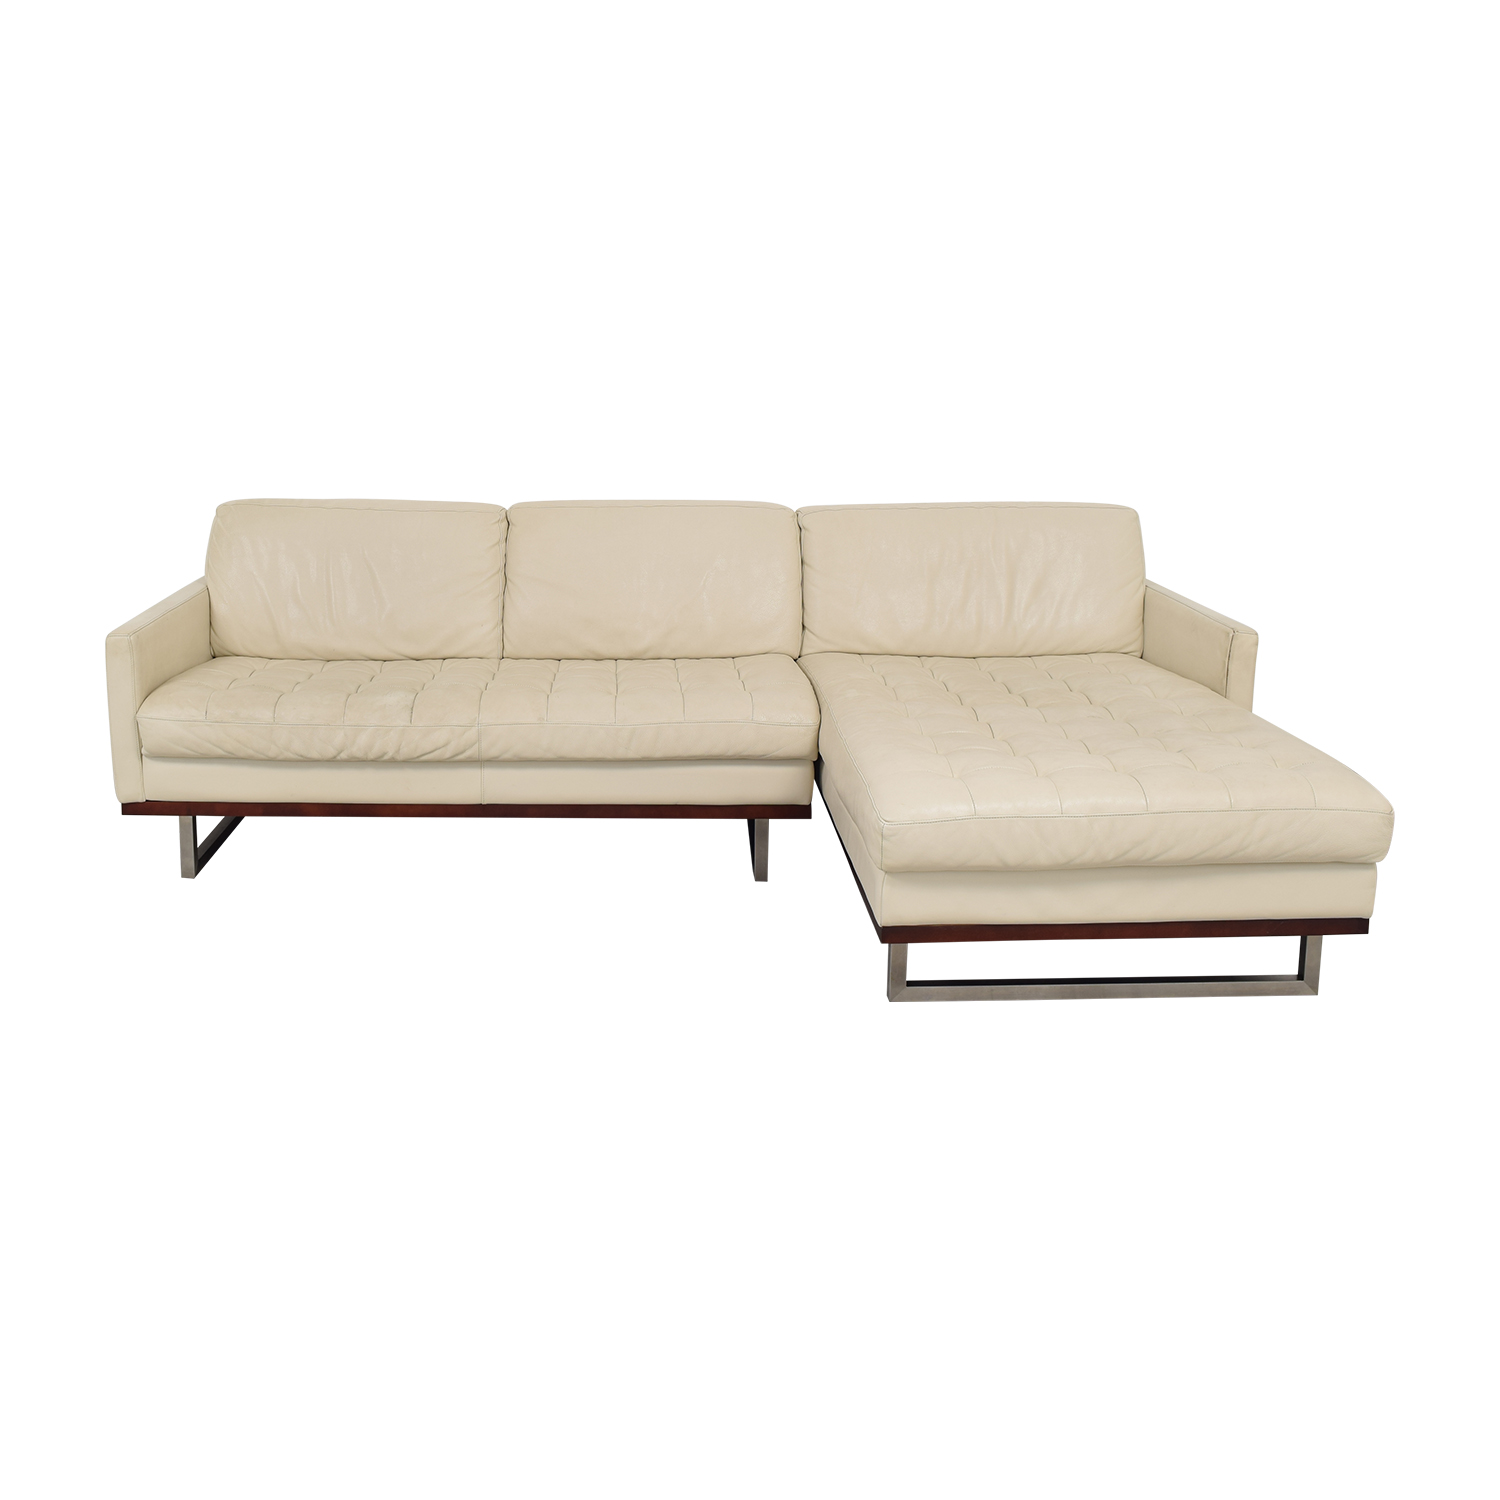 American Leather American Leather Chaise Sectional Sofa Sofas